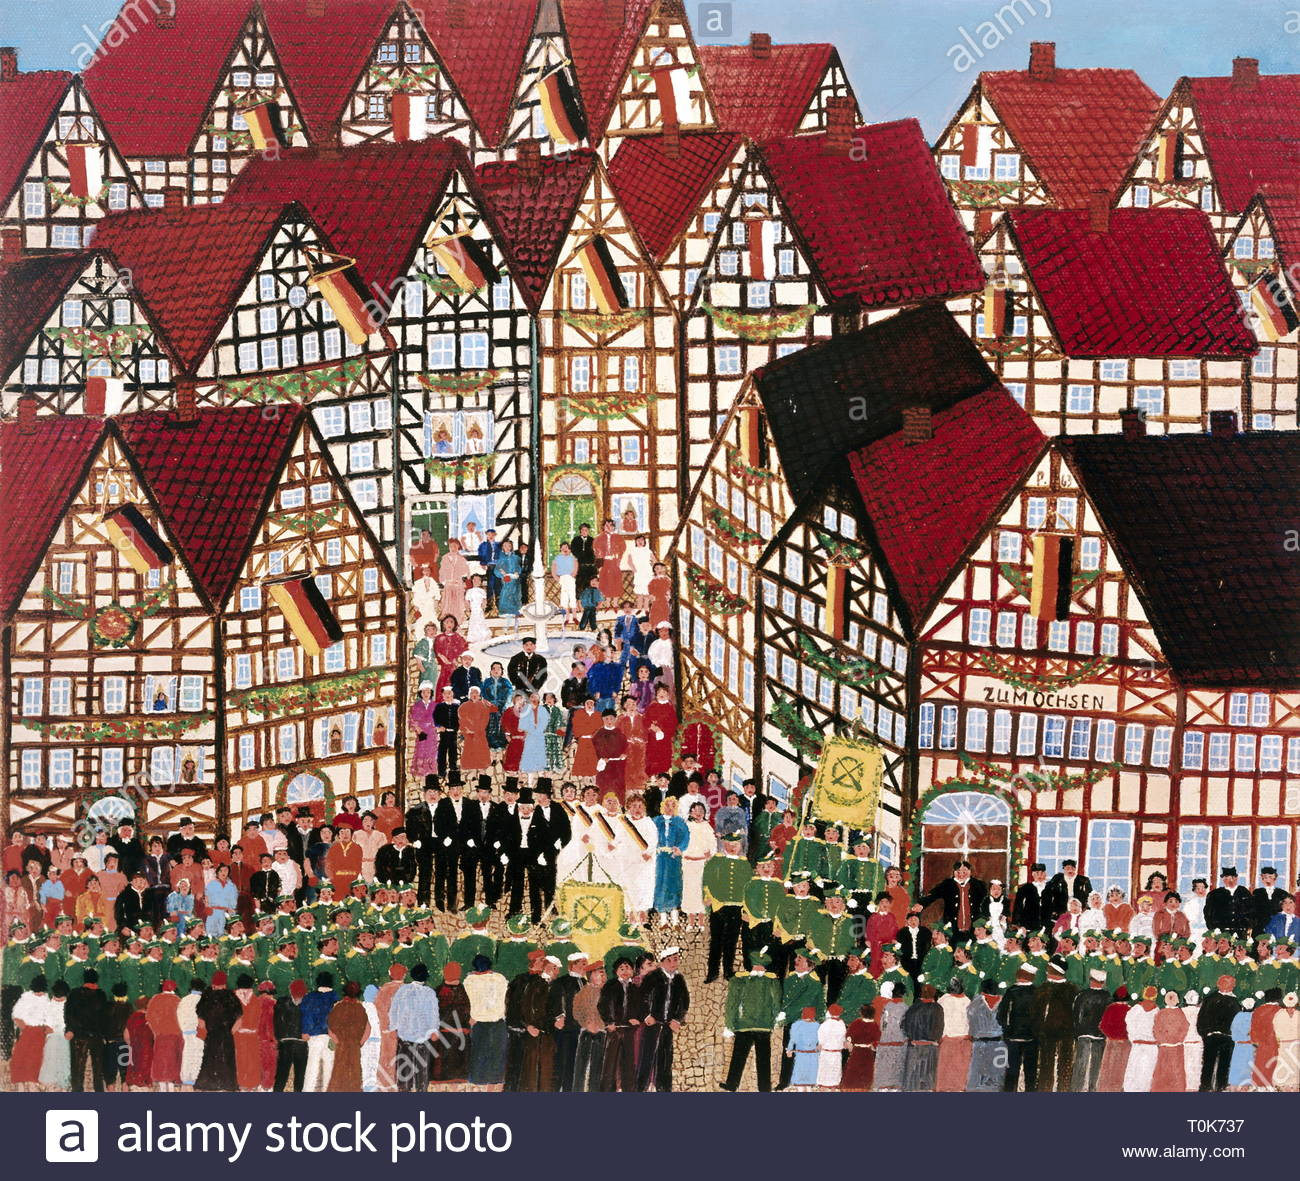 fine arts, Paps (Waldemar Rusche, 1882 - 1965), painting, 'Schuetzenfest in Hessen', oil on canvas, 1963, private collection, Artist's Copyright must also be cleared - Stock Image